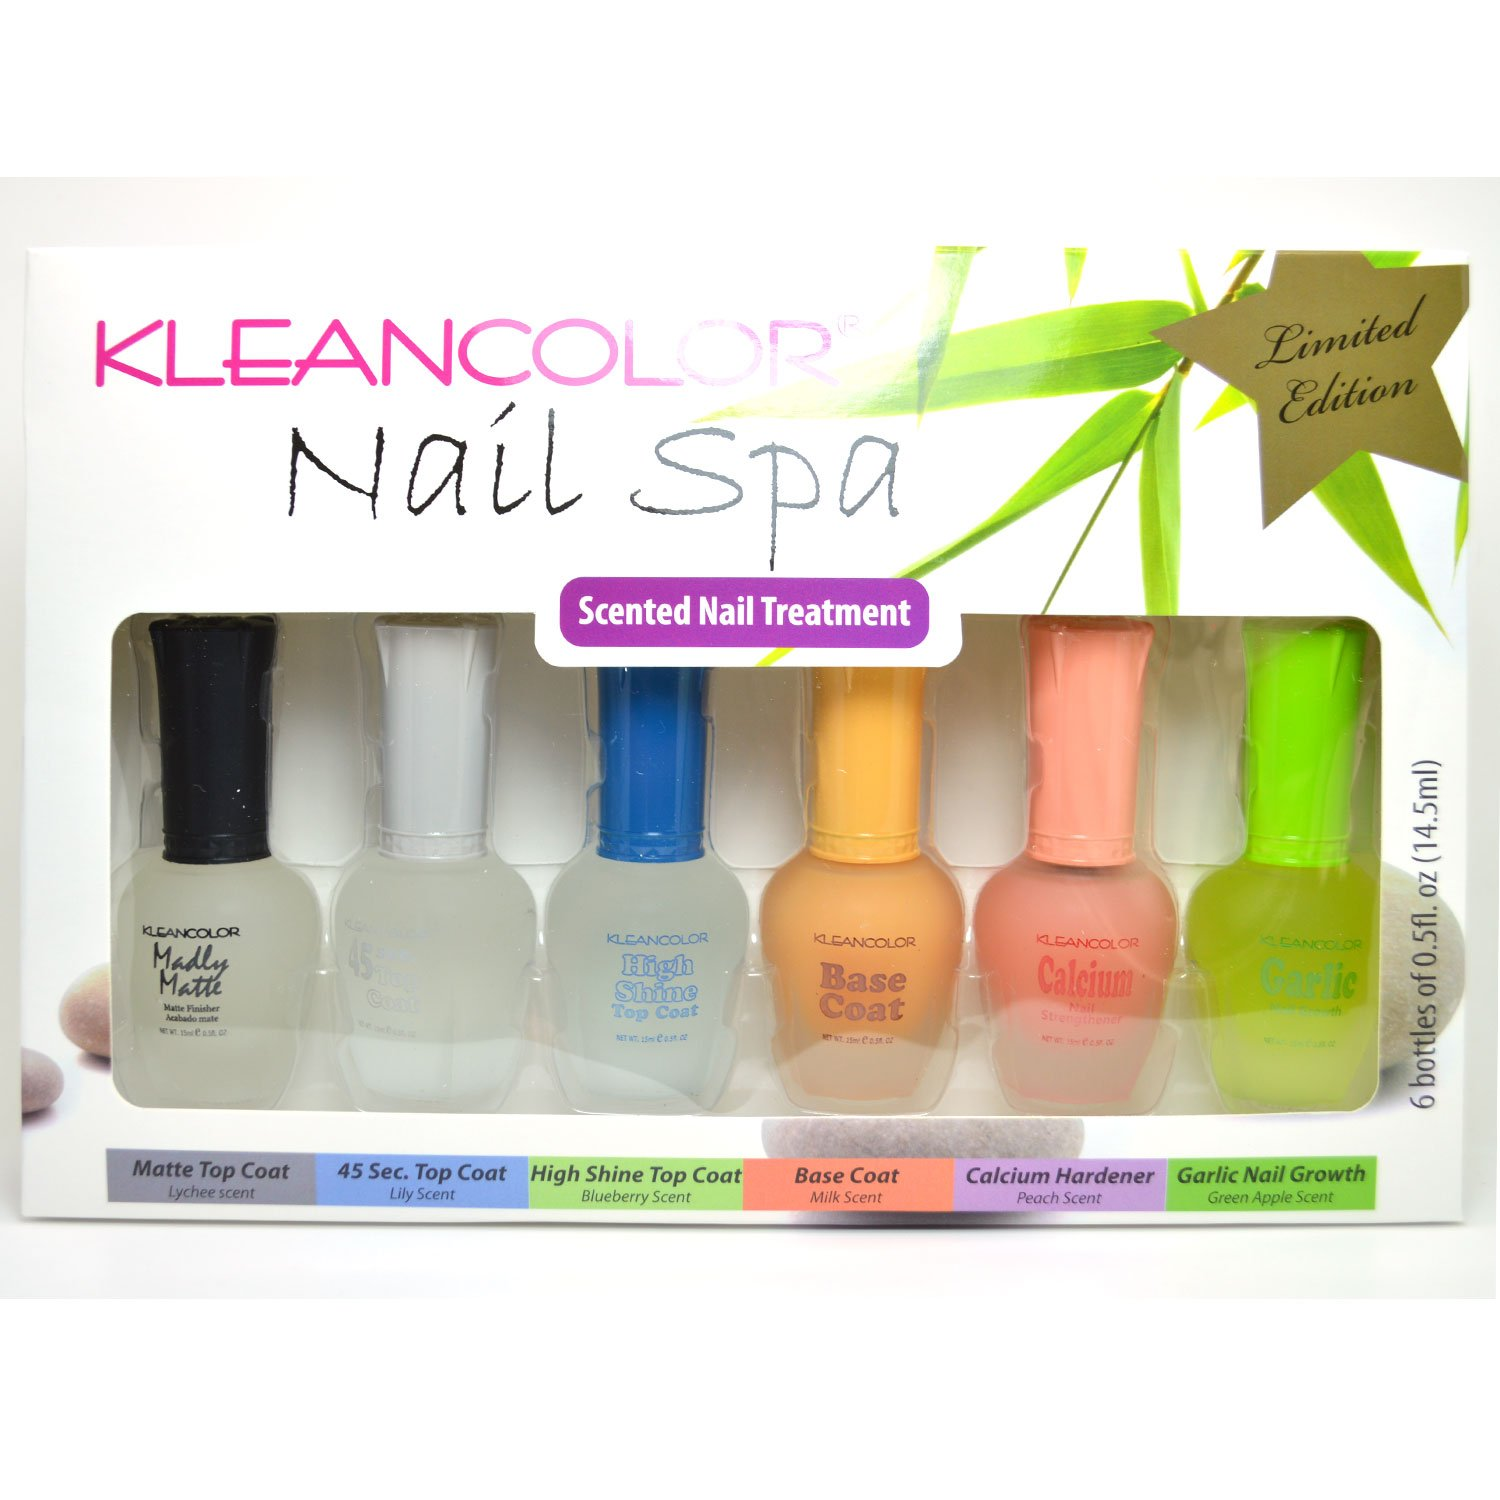 Amazon.com : 6 Kleancolor Polish Nail Spa Limited Edition Scented ...